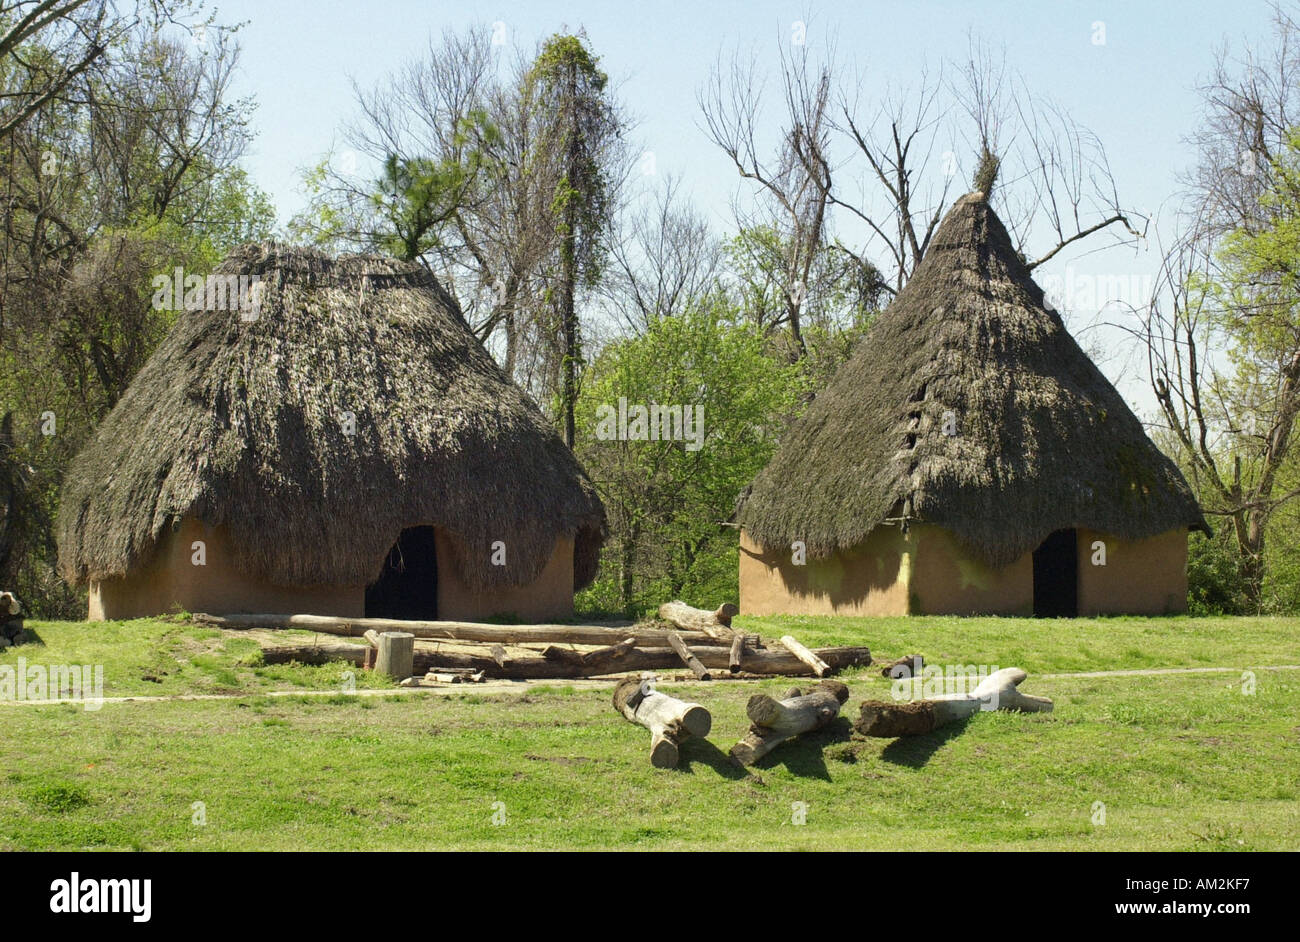 Chucalissa village a 1500s Mississippean reconstructed site ...